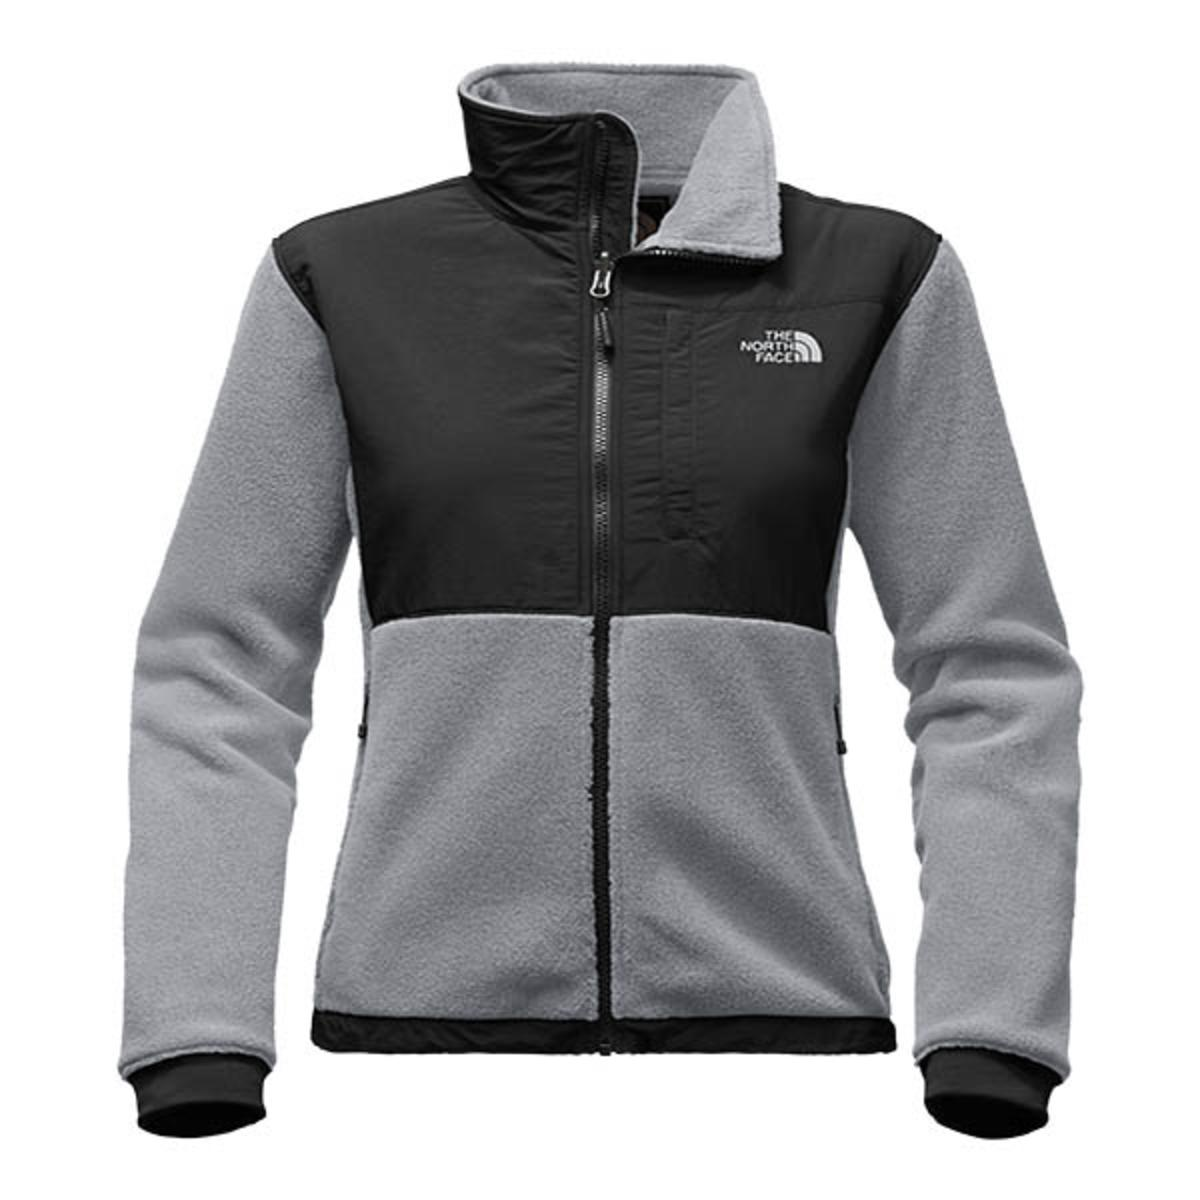 077b90ae485 The North Face Women s Denali 2 Jacket - Medium Grey Heather Black ...